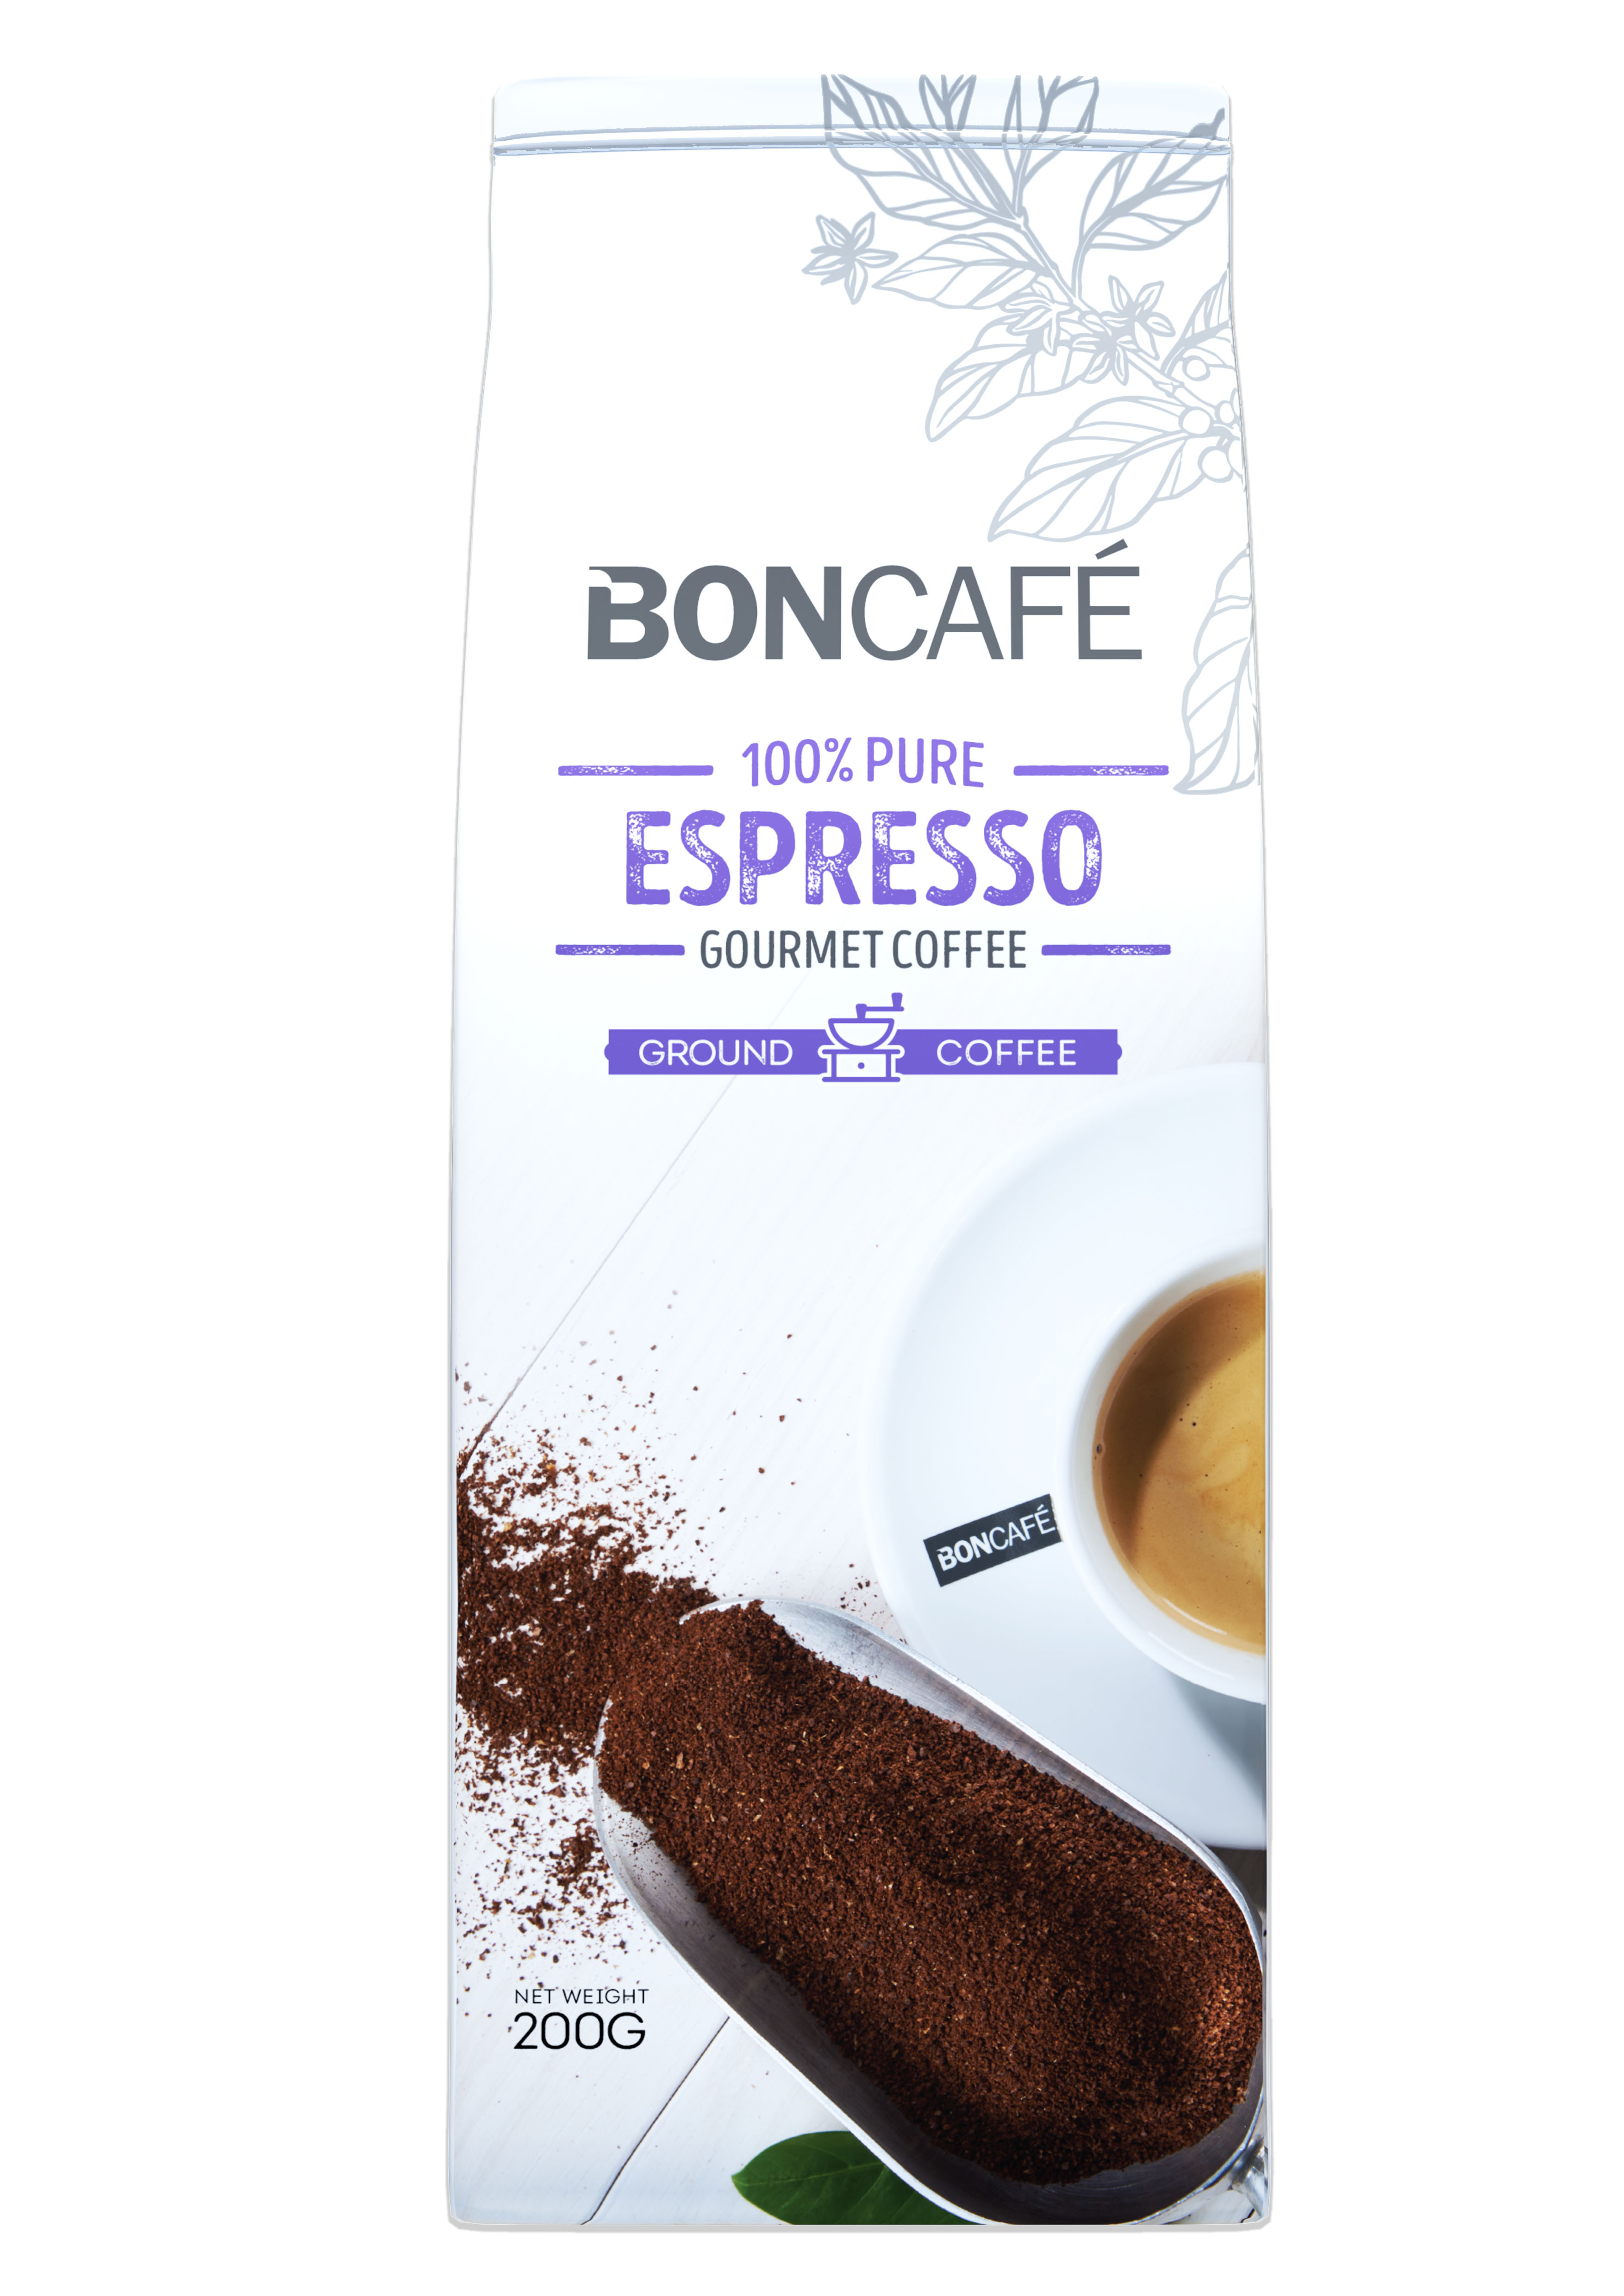 BONCAFÉ - GOURMET COLLECTION GROUND COFFEE: ESPRESSO BLEND